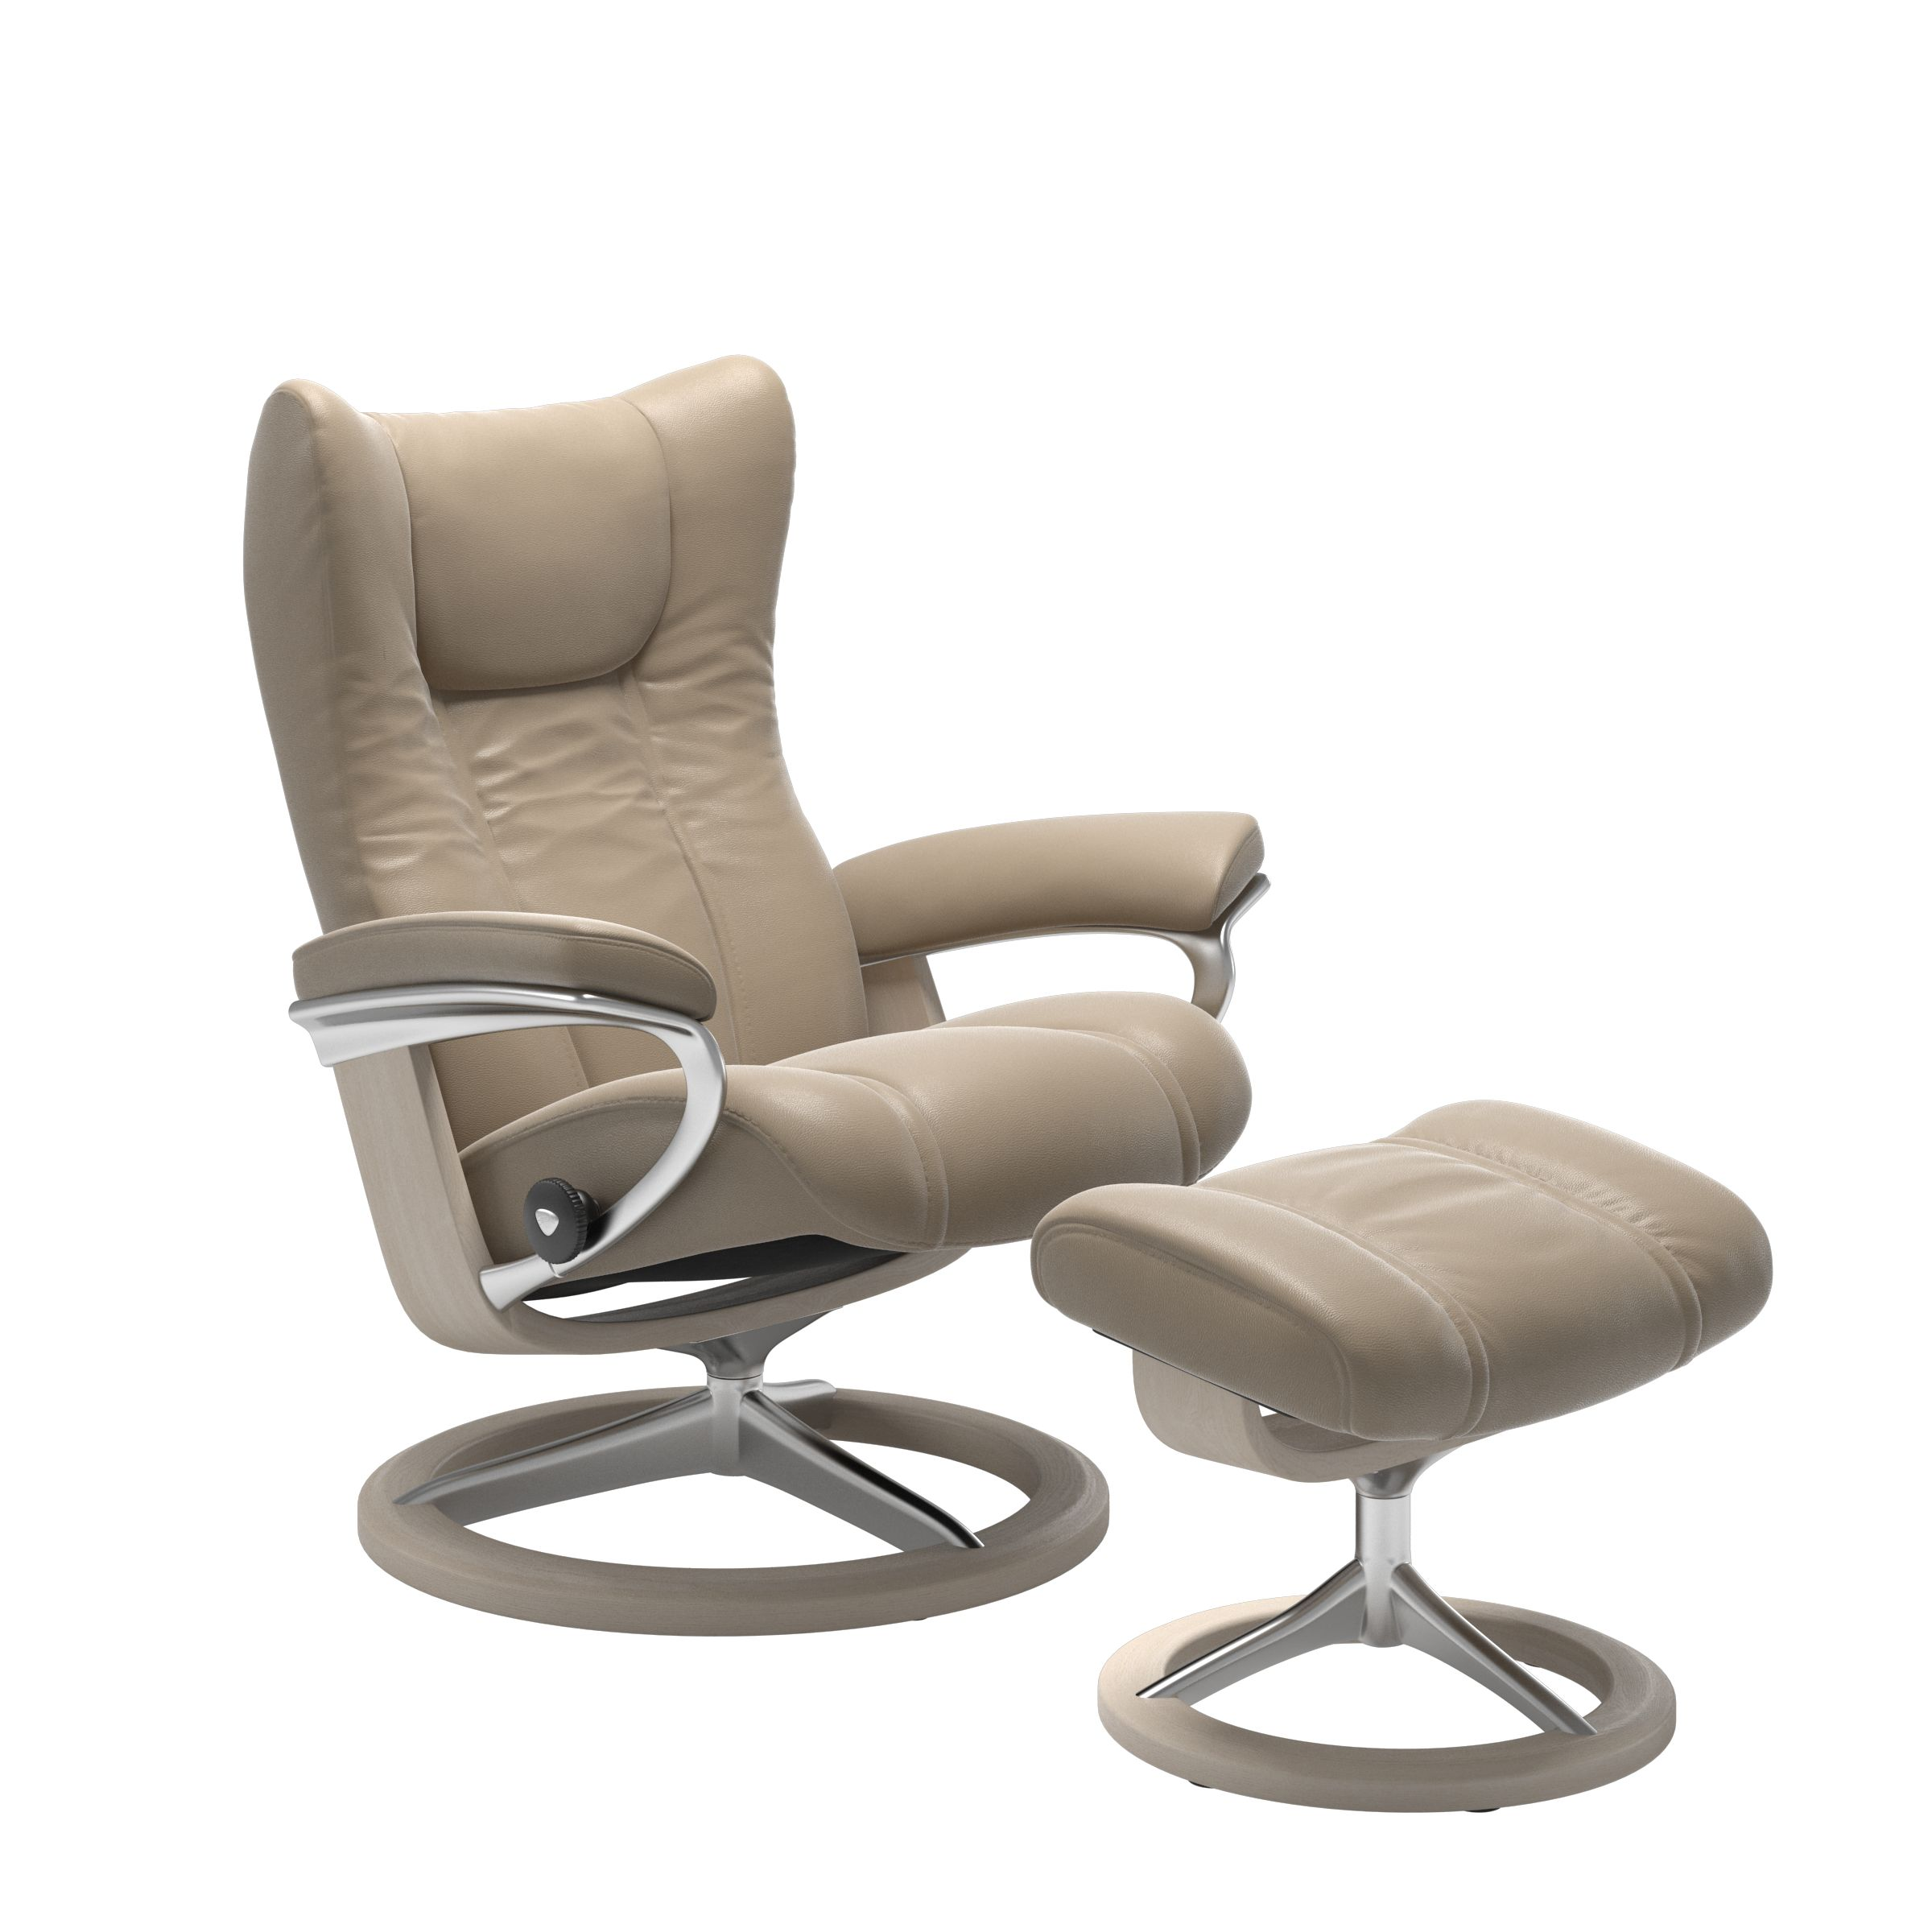 Fauteuil Stressless Nice Fauteuil Confort Inclinables Modernes Stressless Wing Et